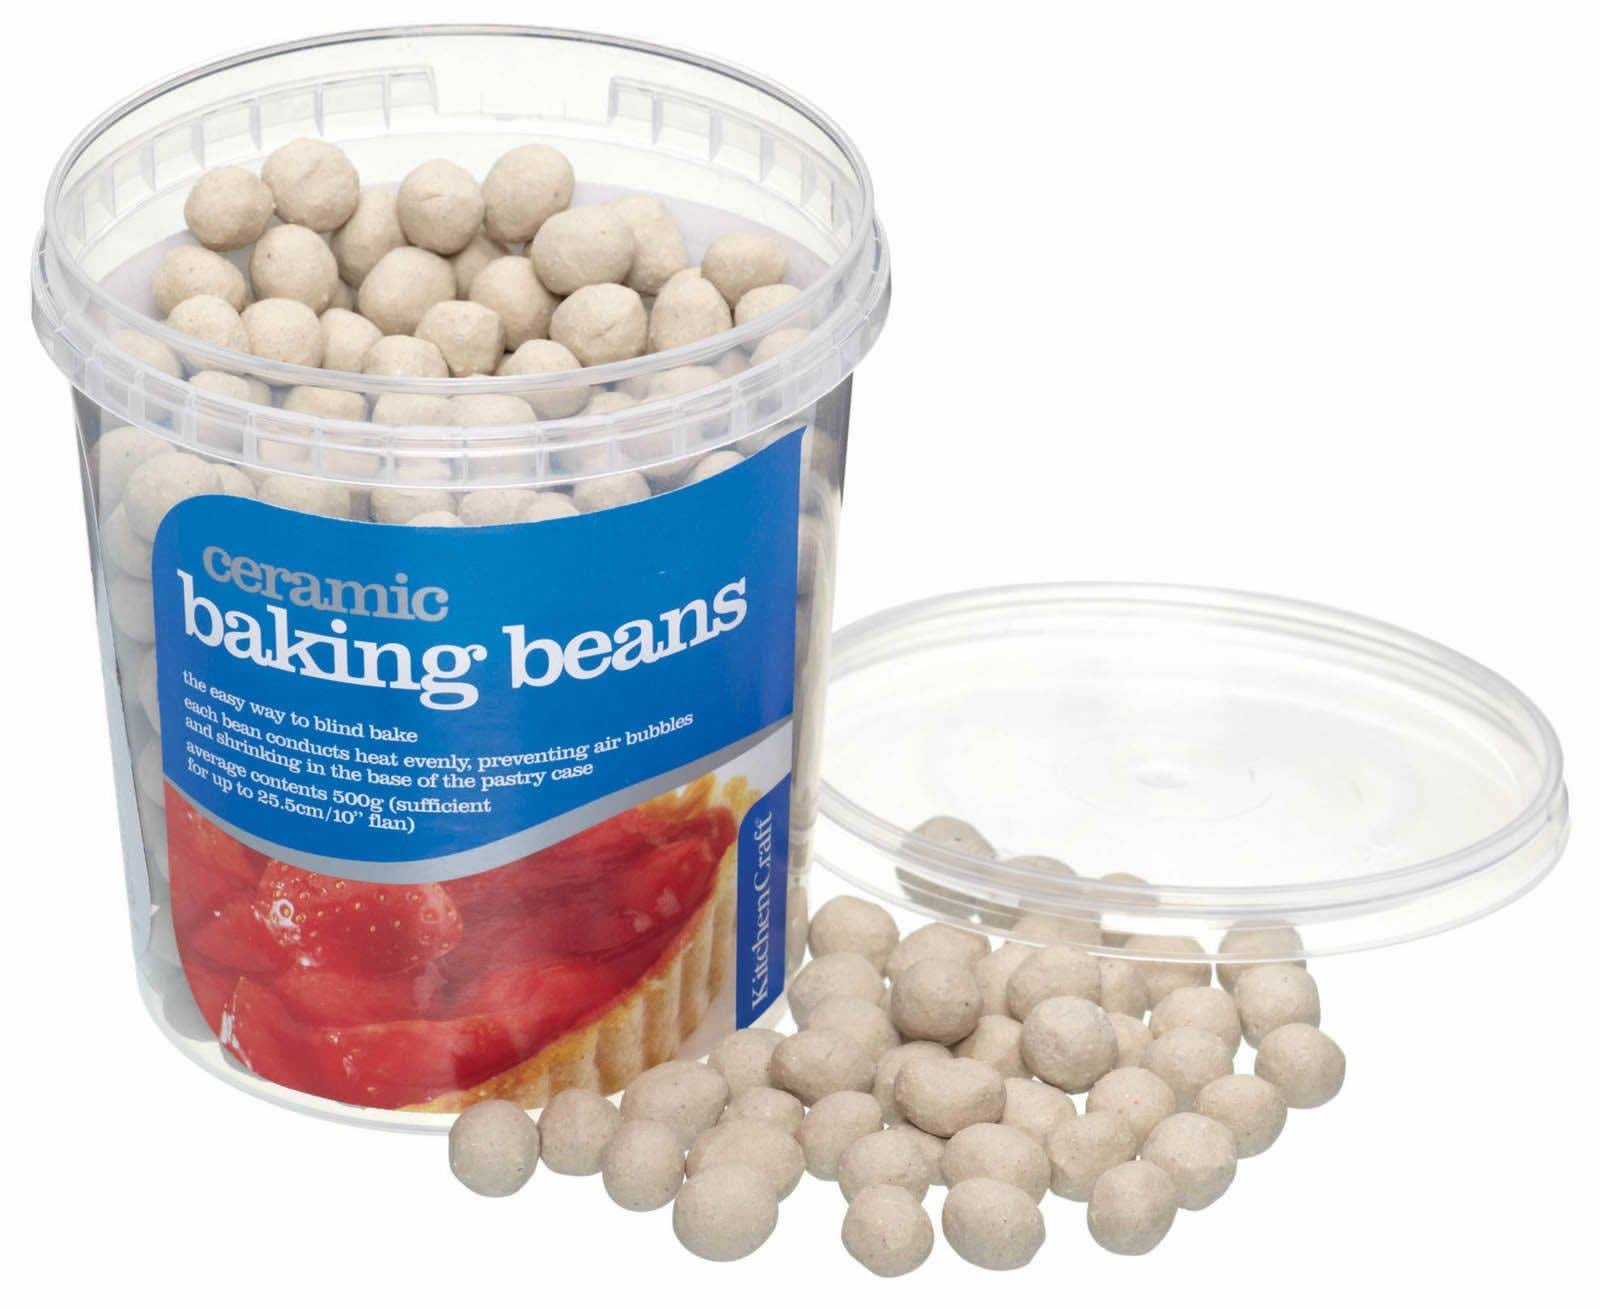 Kitchen Craft Ceramic Baking Beans Tub